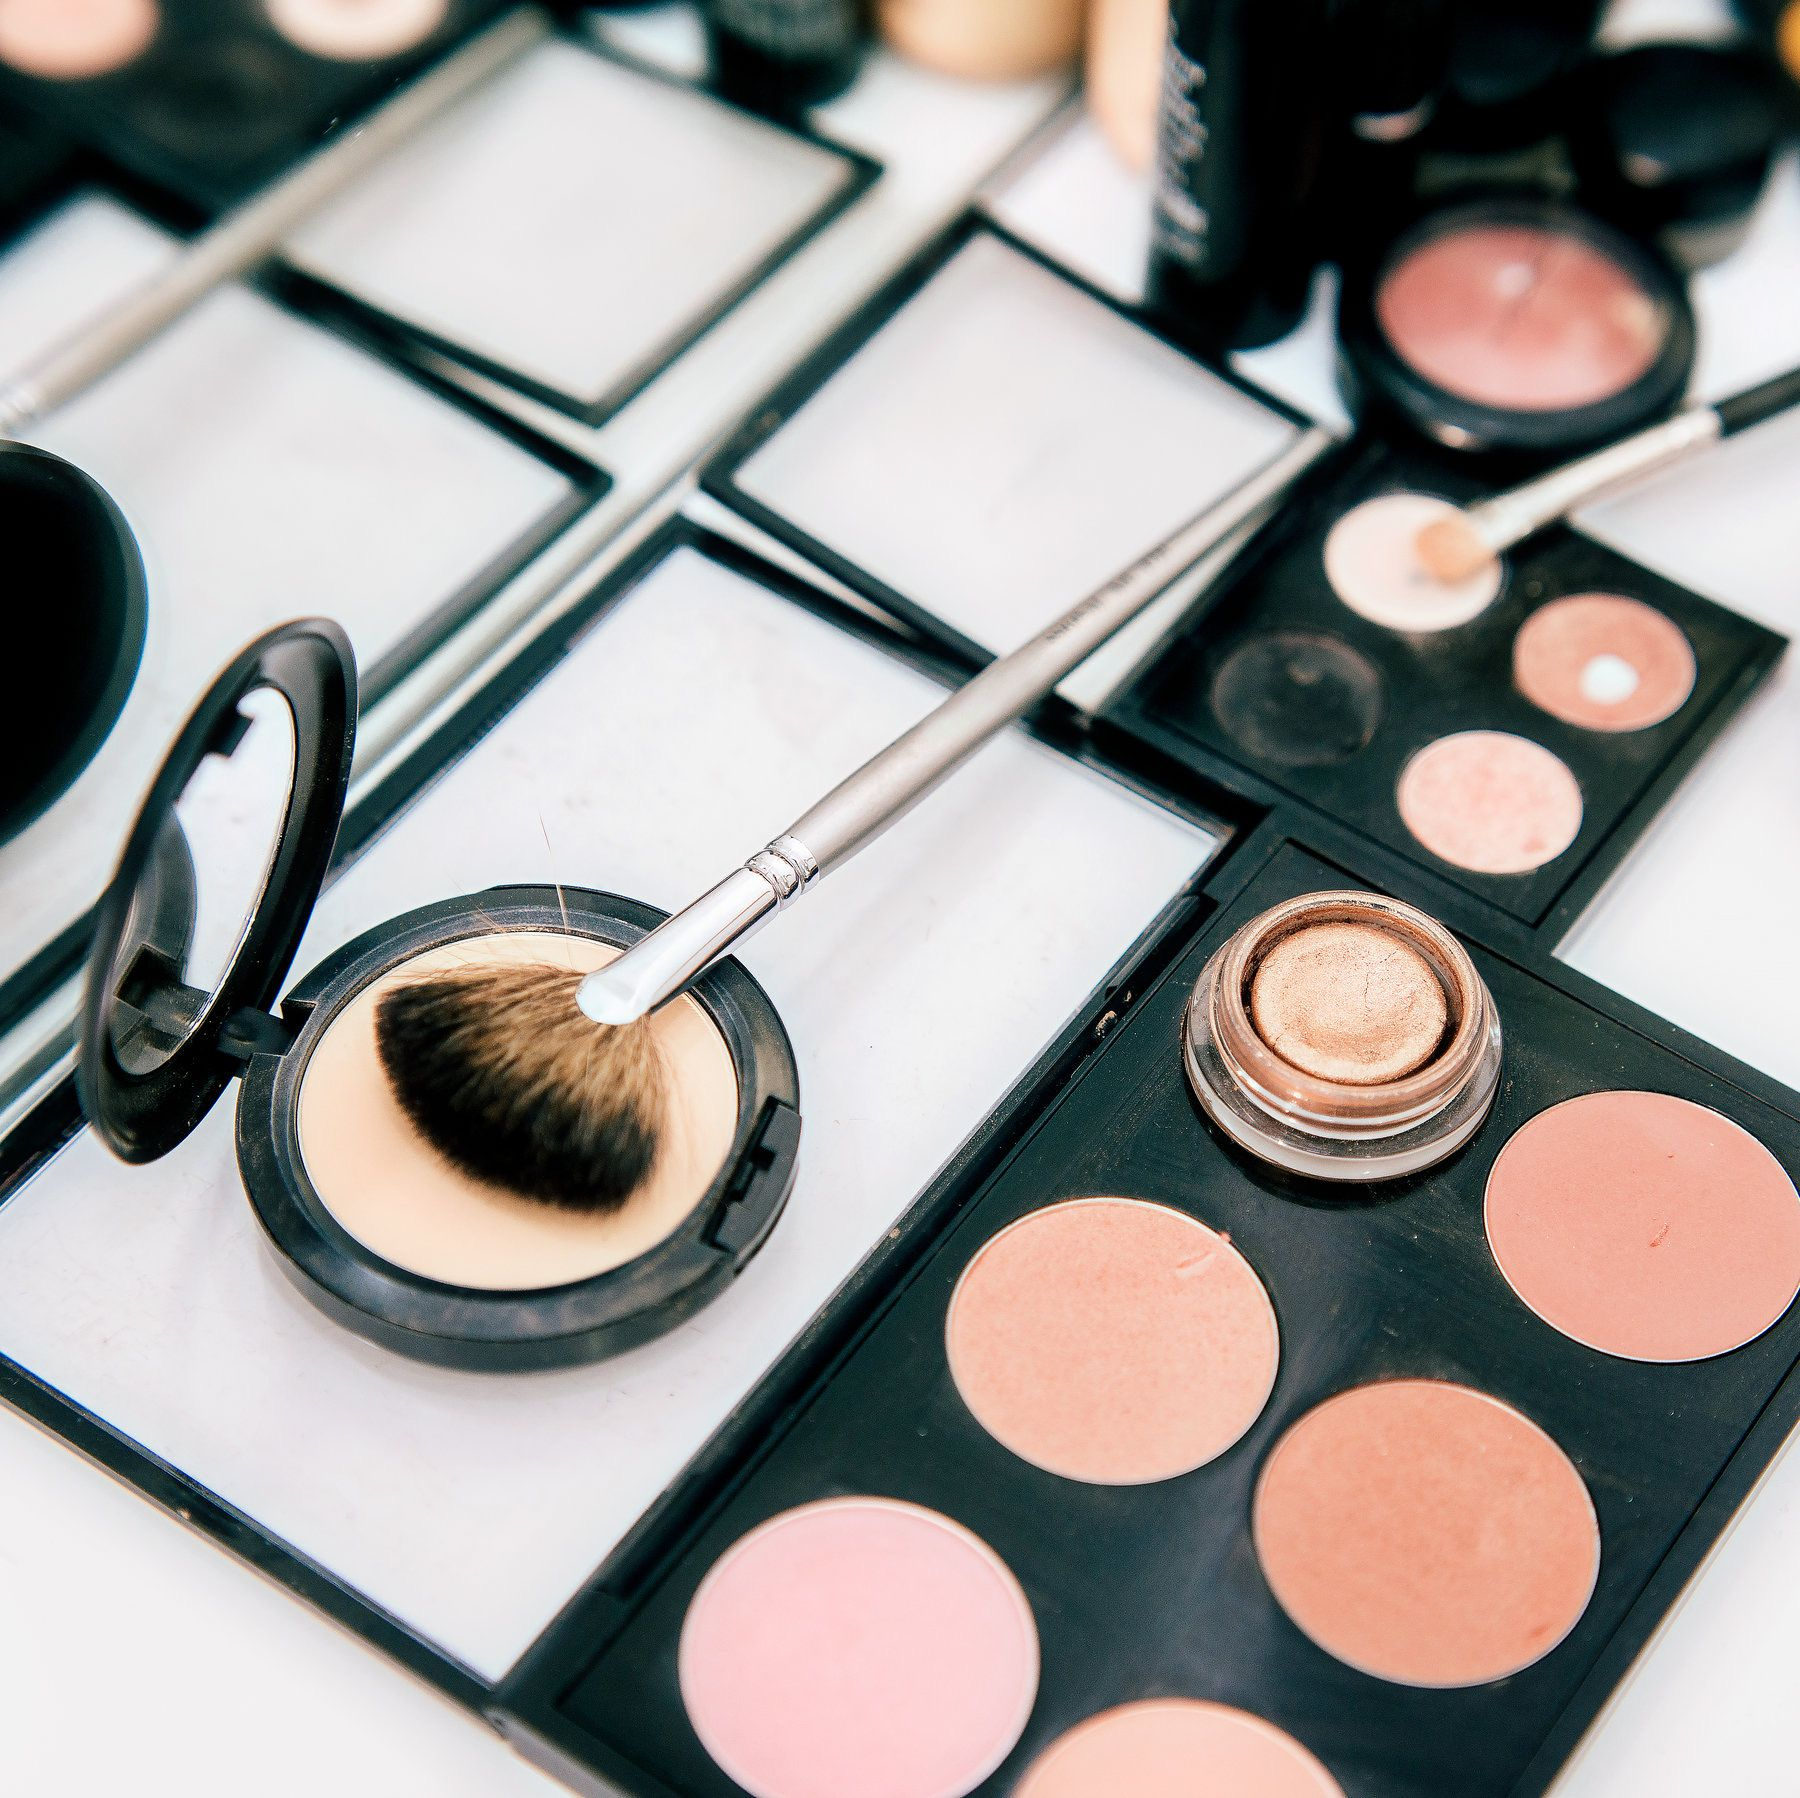 Pin by Lovely on Eye in 2020 Cheap high end makeup, High